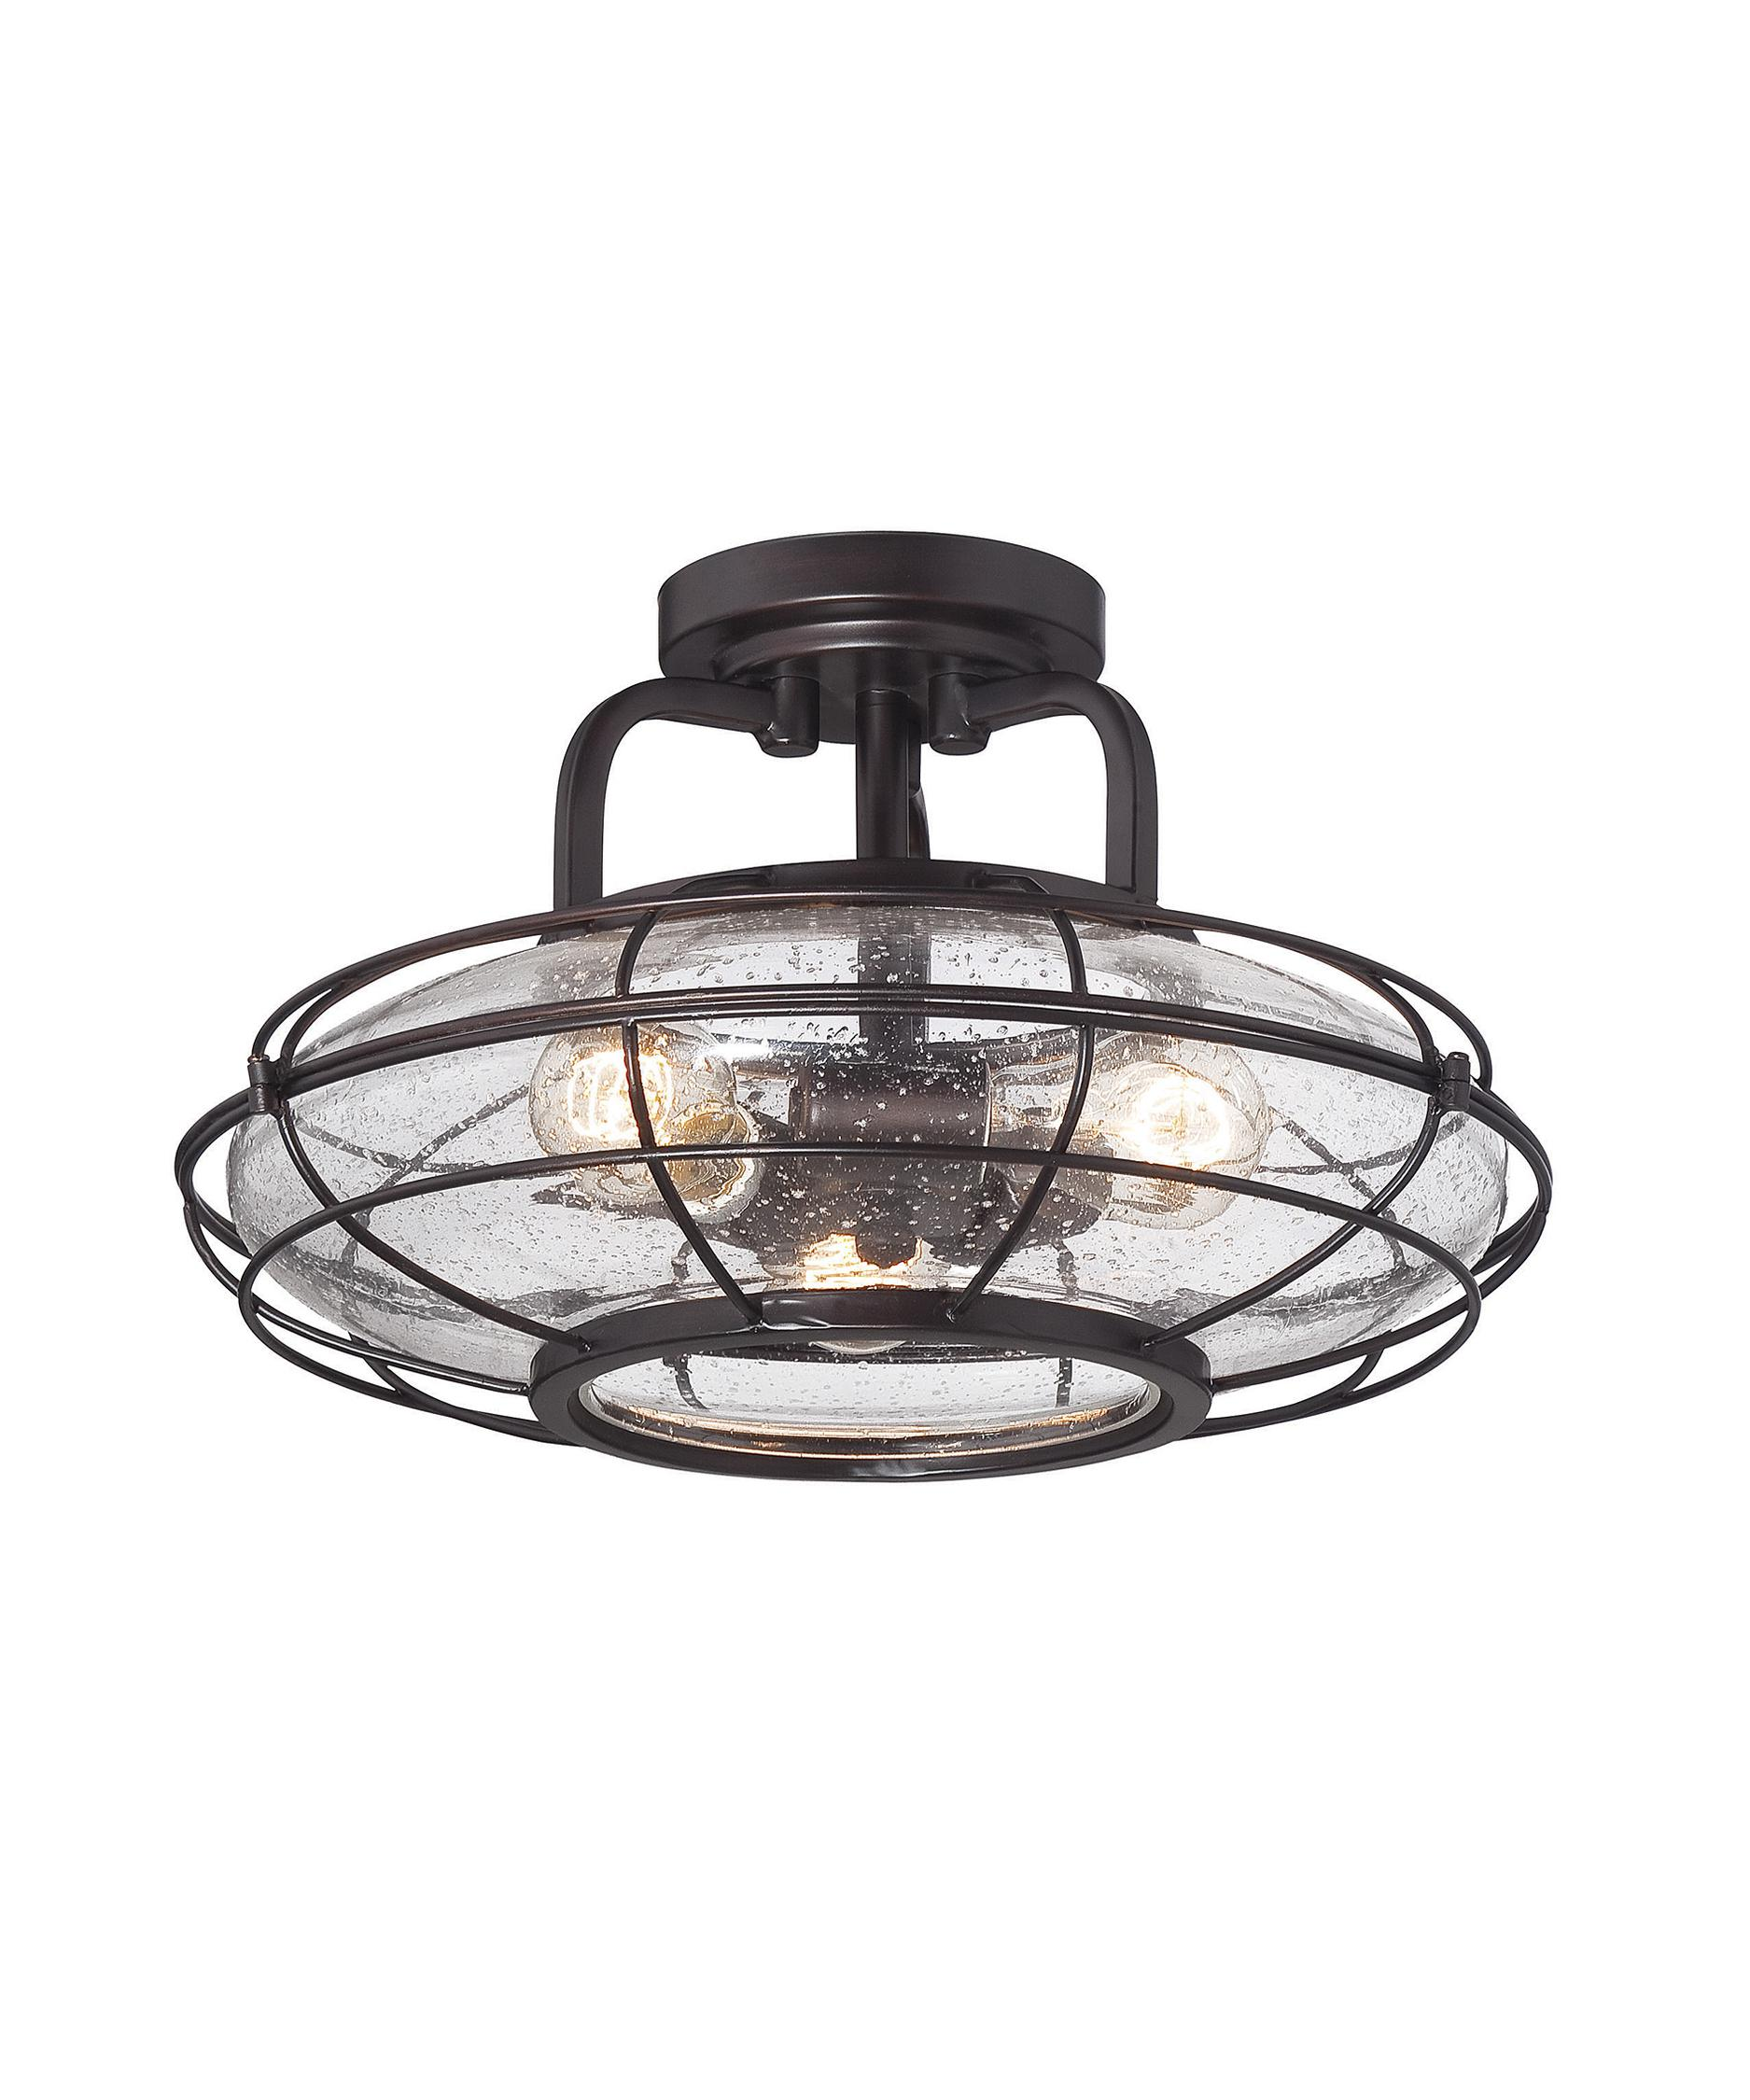 shown in english bronze finish and clear seedy glass - Savoy Lighting